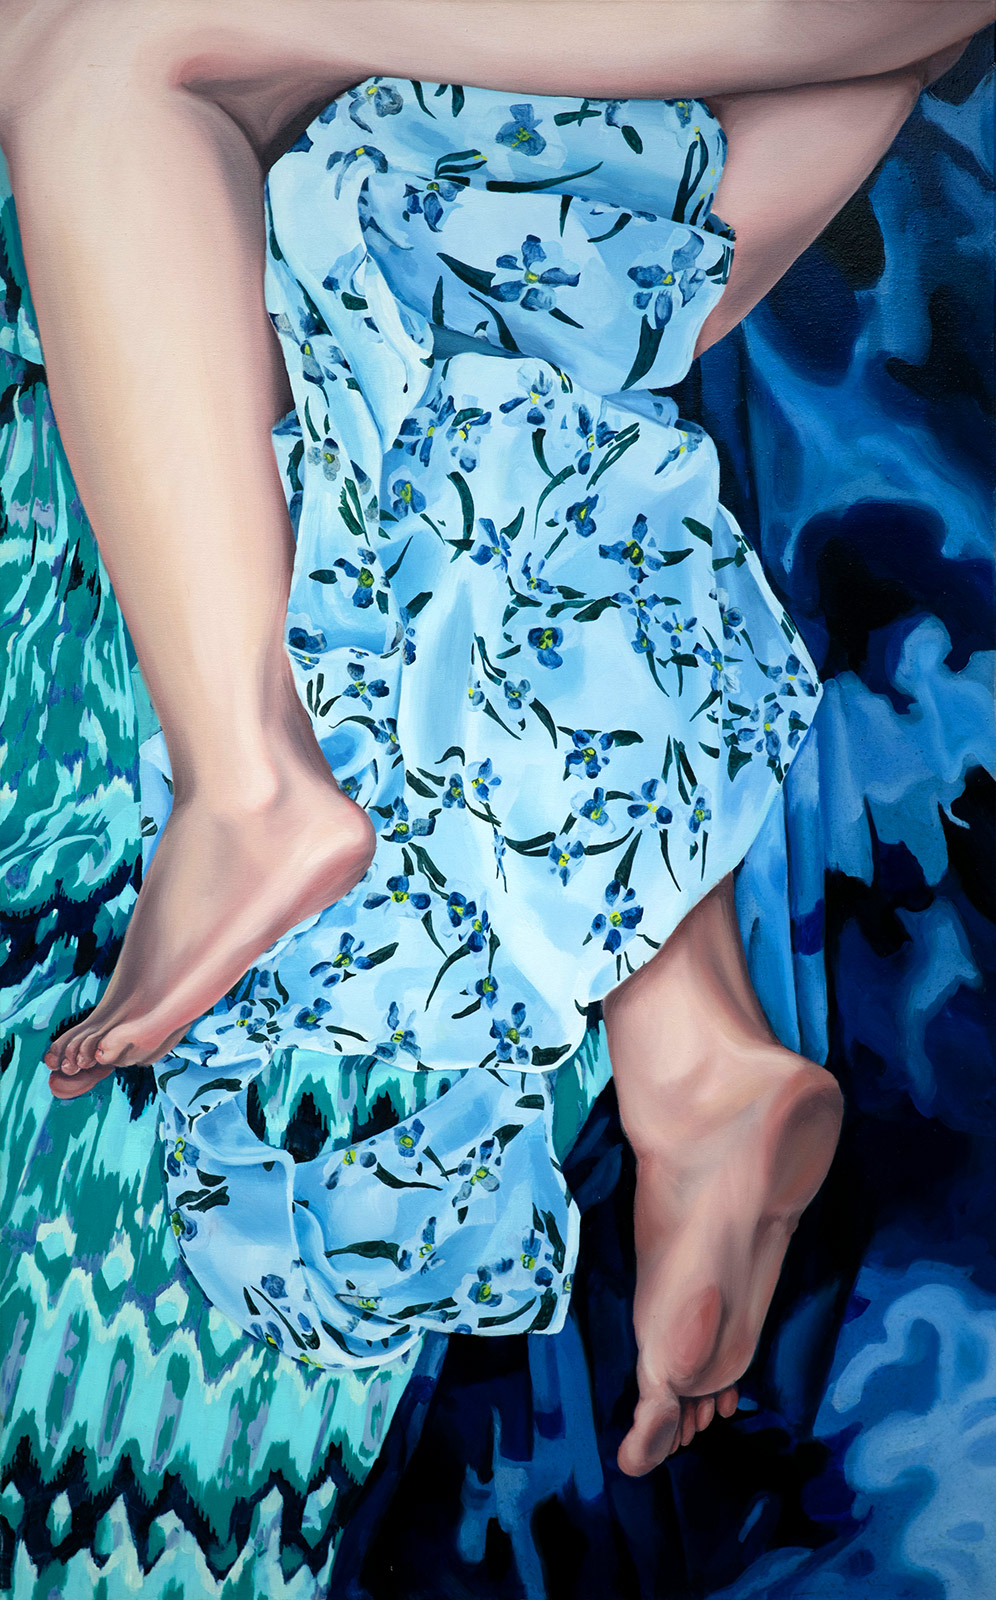 paintings, aesthetic, colorful, figurative, portraiture, bodies, patterns, people, sexuality, blue, turquoise, flax-canvas, oil, beautiful, danish, decorative, design, female, feminist, flowers, interior, interior-design, modern, modern-art, naturalism, nordic, photorealistic, pretty, scandinavien, women, Buy original high quality art. Paintings, drawings, limited edition prints & posters by talented artists.